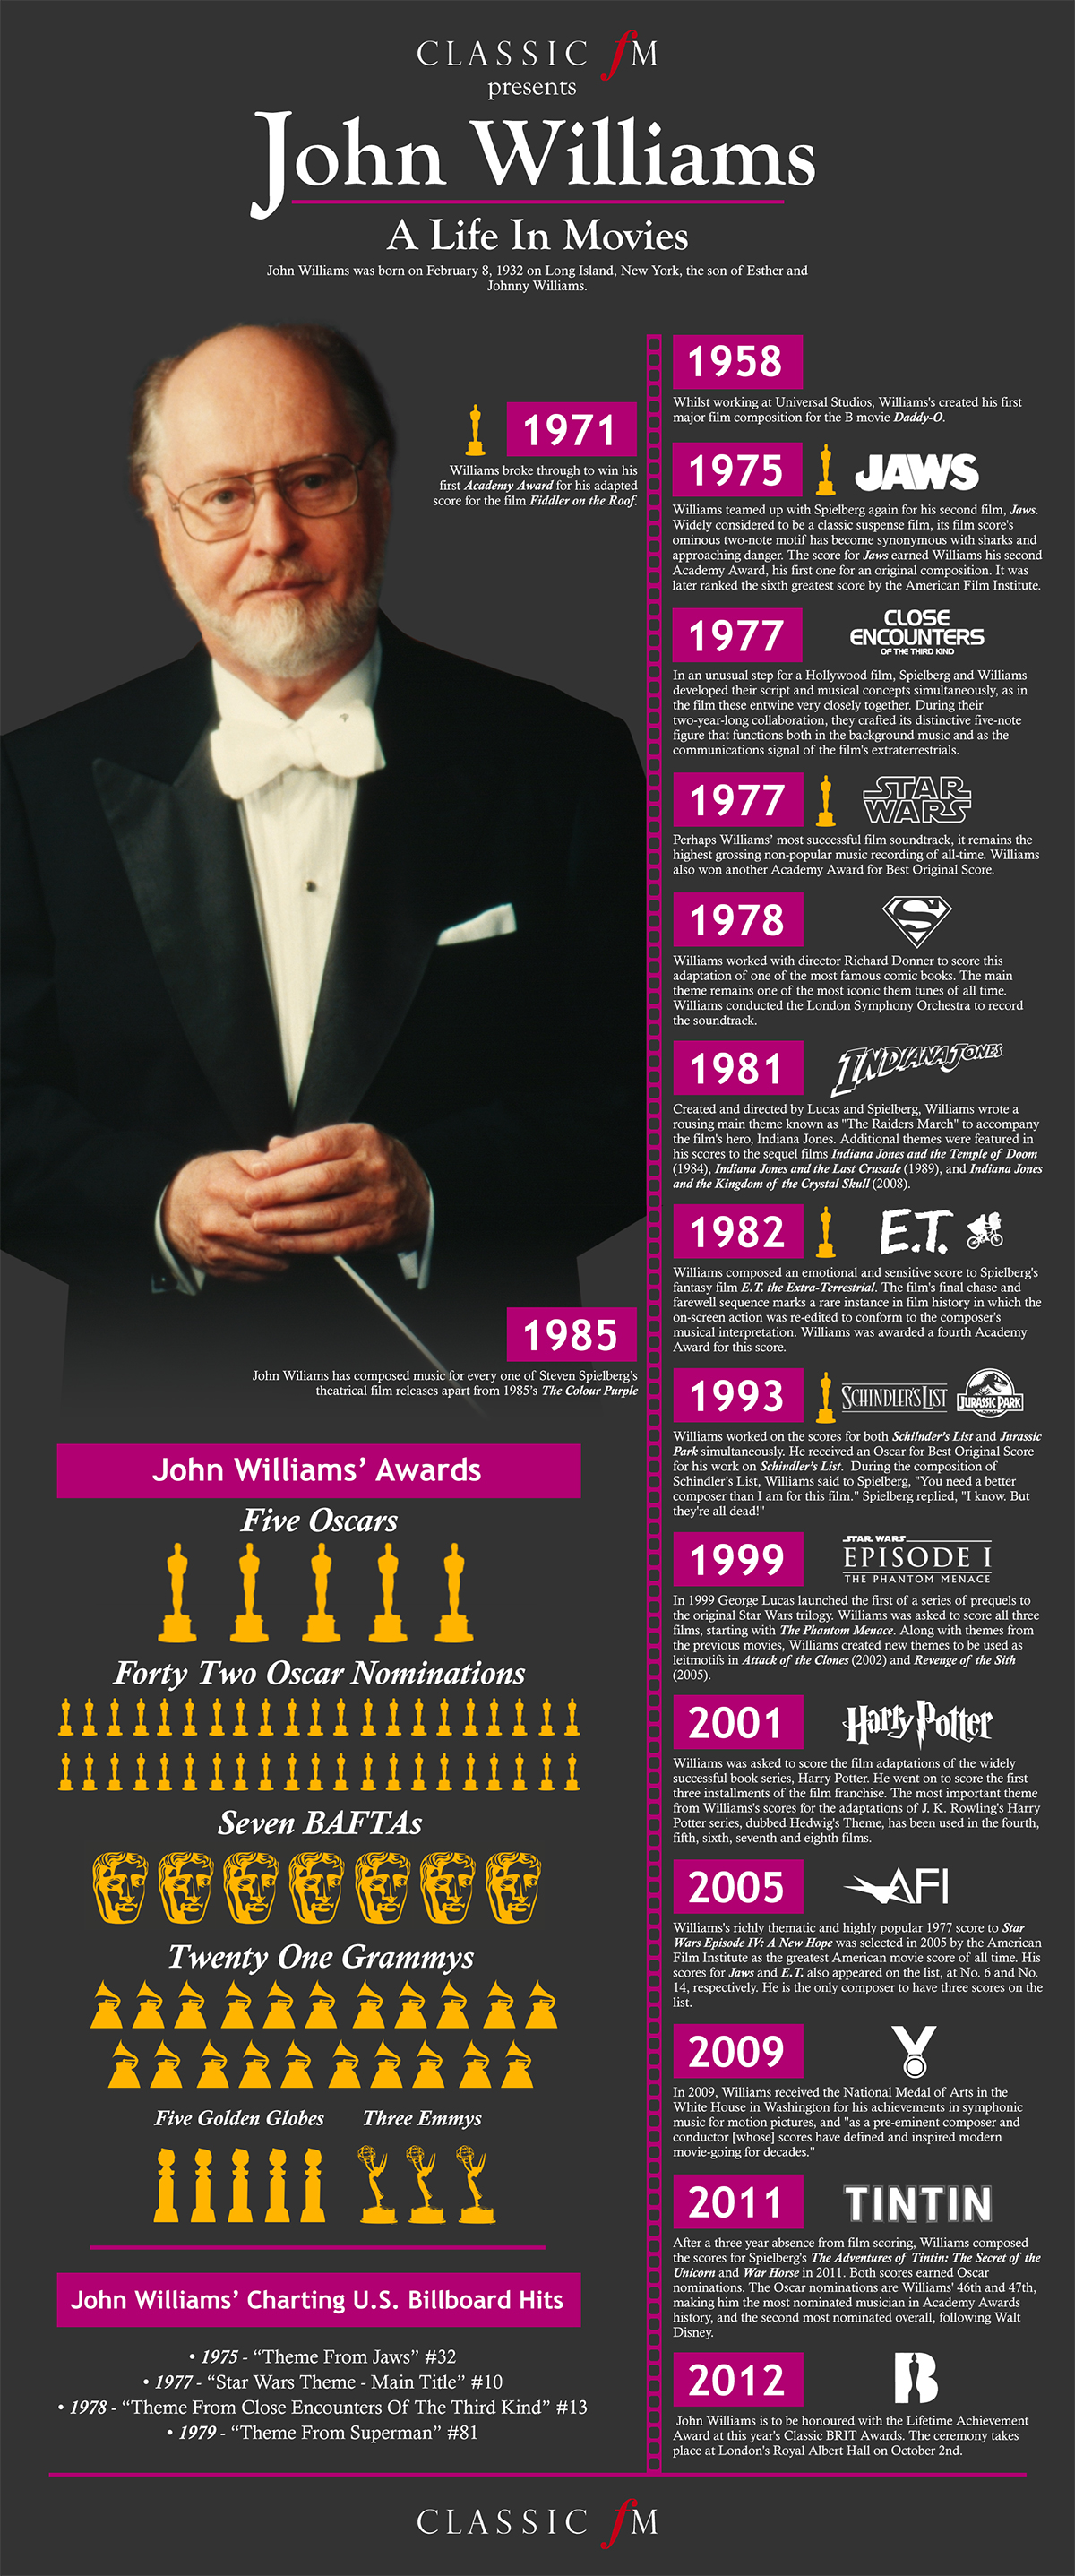 john-williams-life-in-movies-infographic-1345825957-custom-0